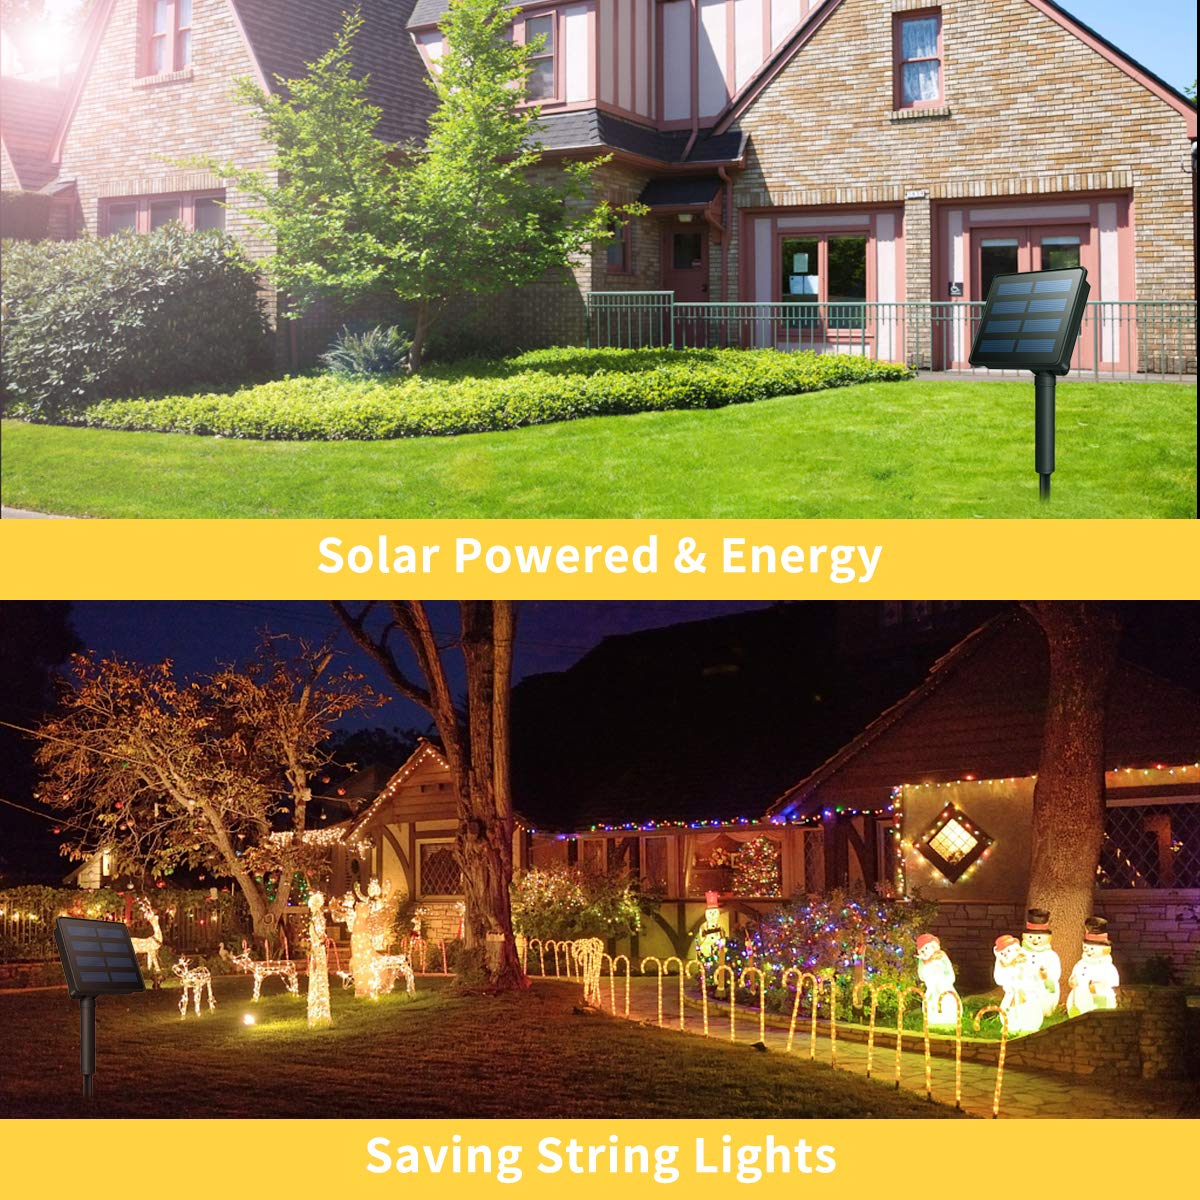 Solar String Lights, Morpilot 200LED 22M 8 Modes Luminaire, Warm White Solar Powered Copper Cables 72ft IP65 Waterproof Lights, for Indoor Outdoor Decoration Christmas Parties | Garden | Weddings